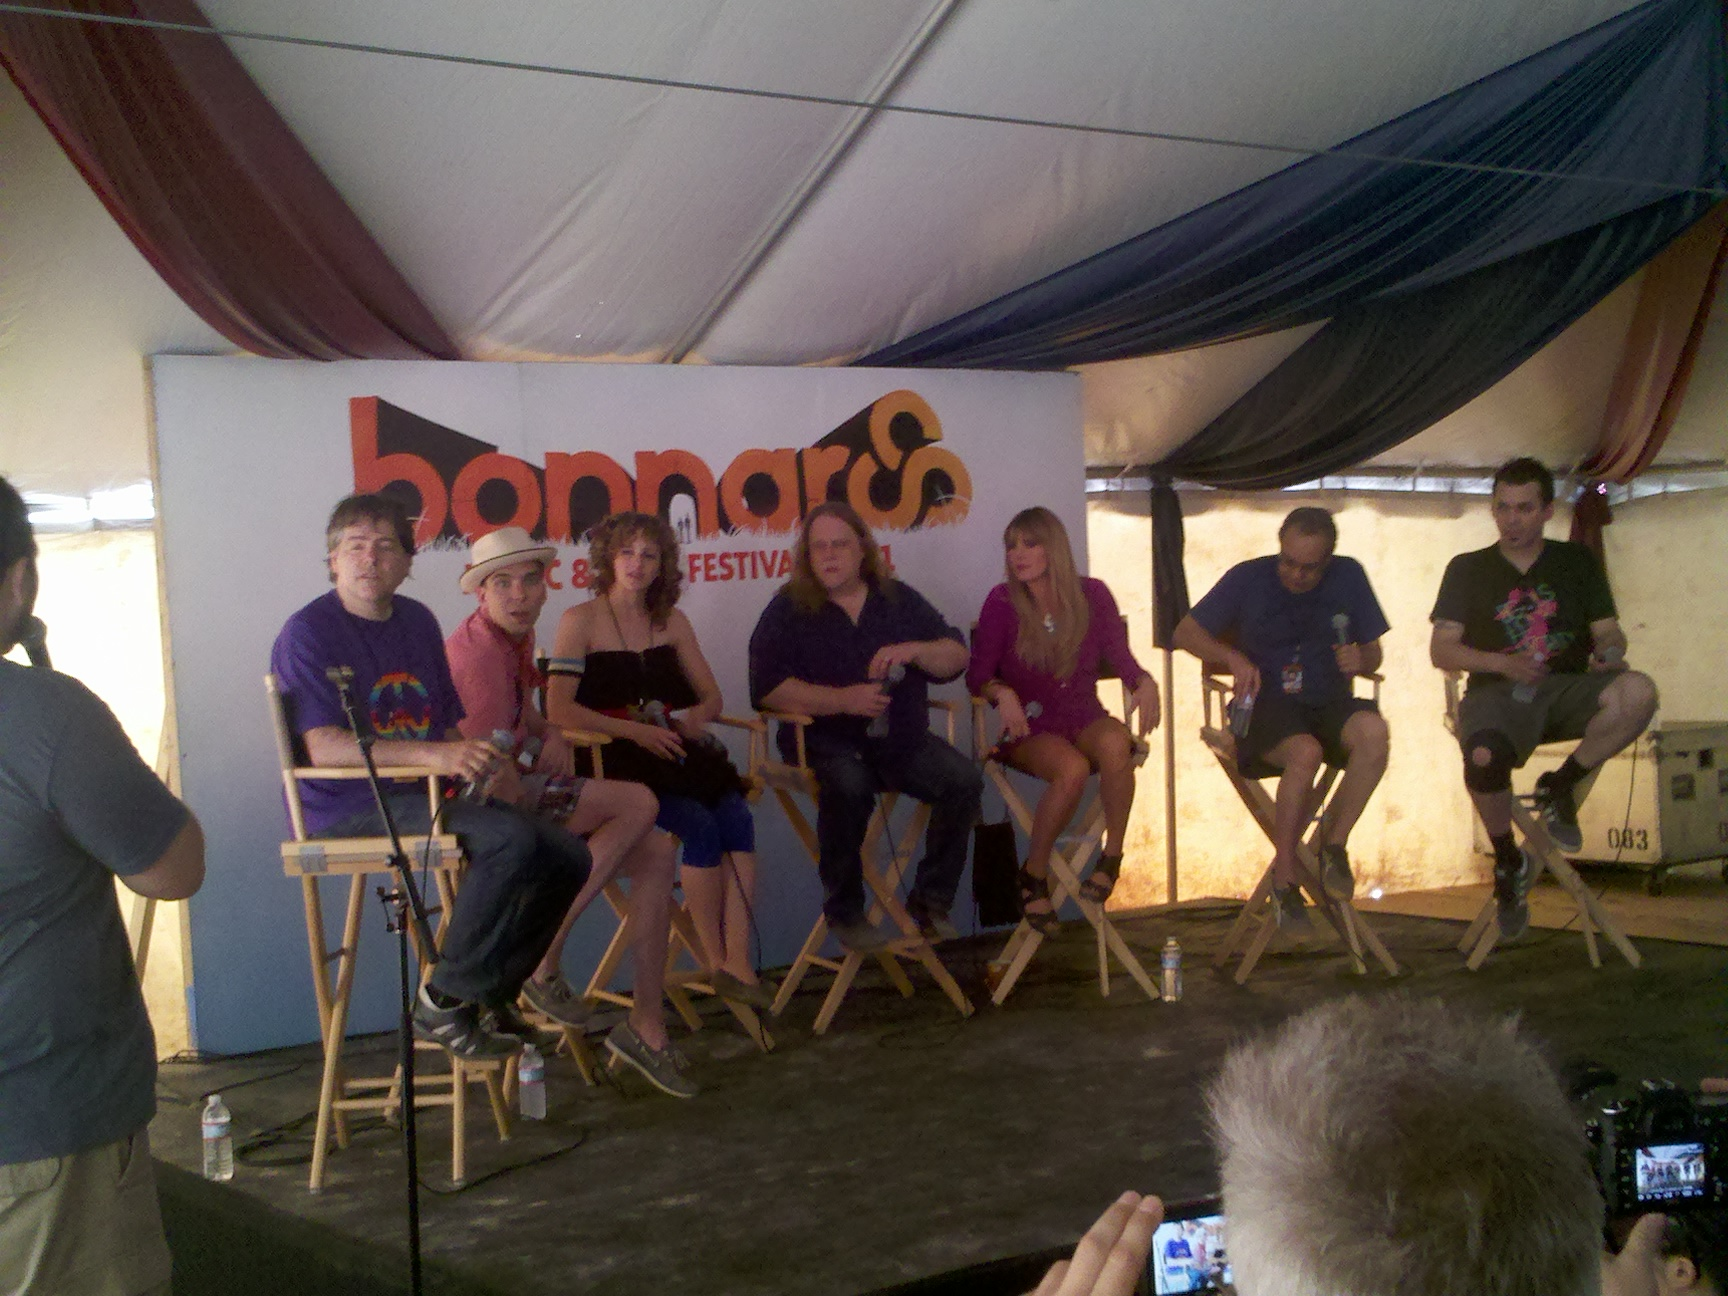 Bonnaroo day 2 press conference